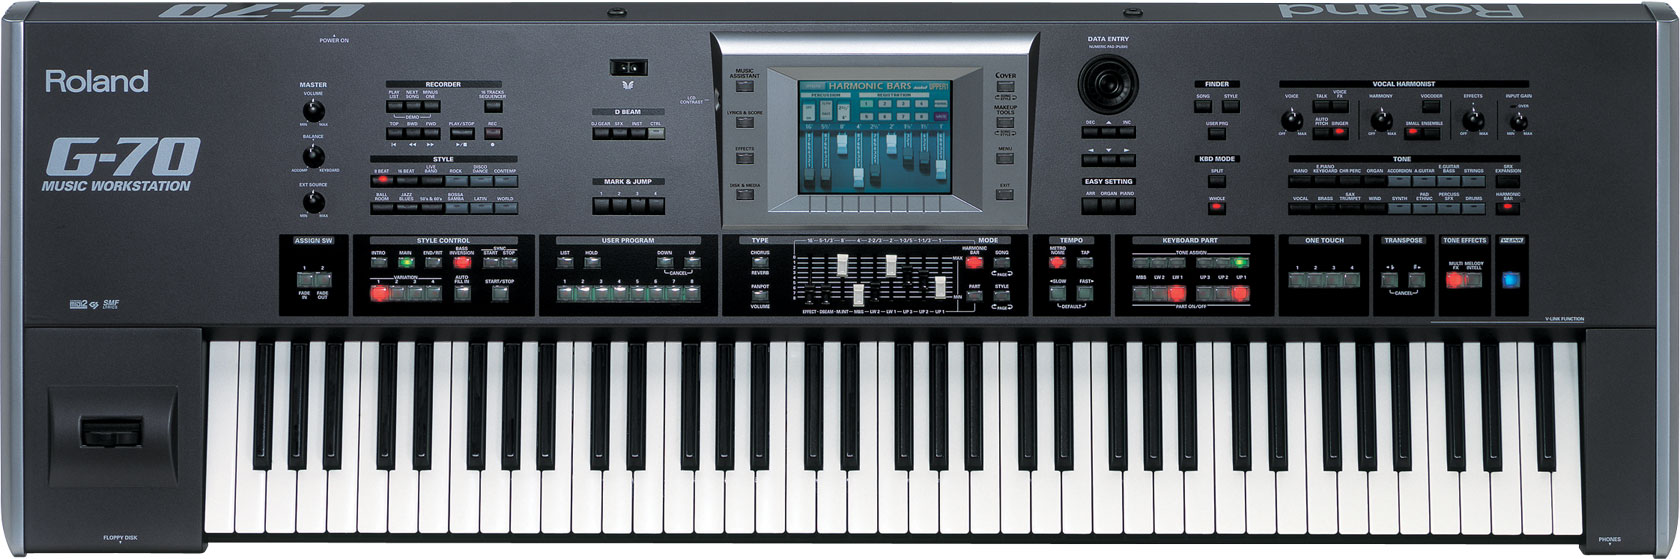 Download Korg Styles